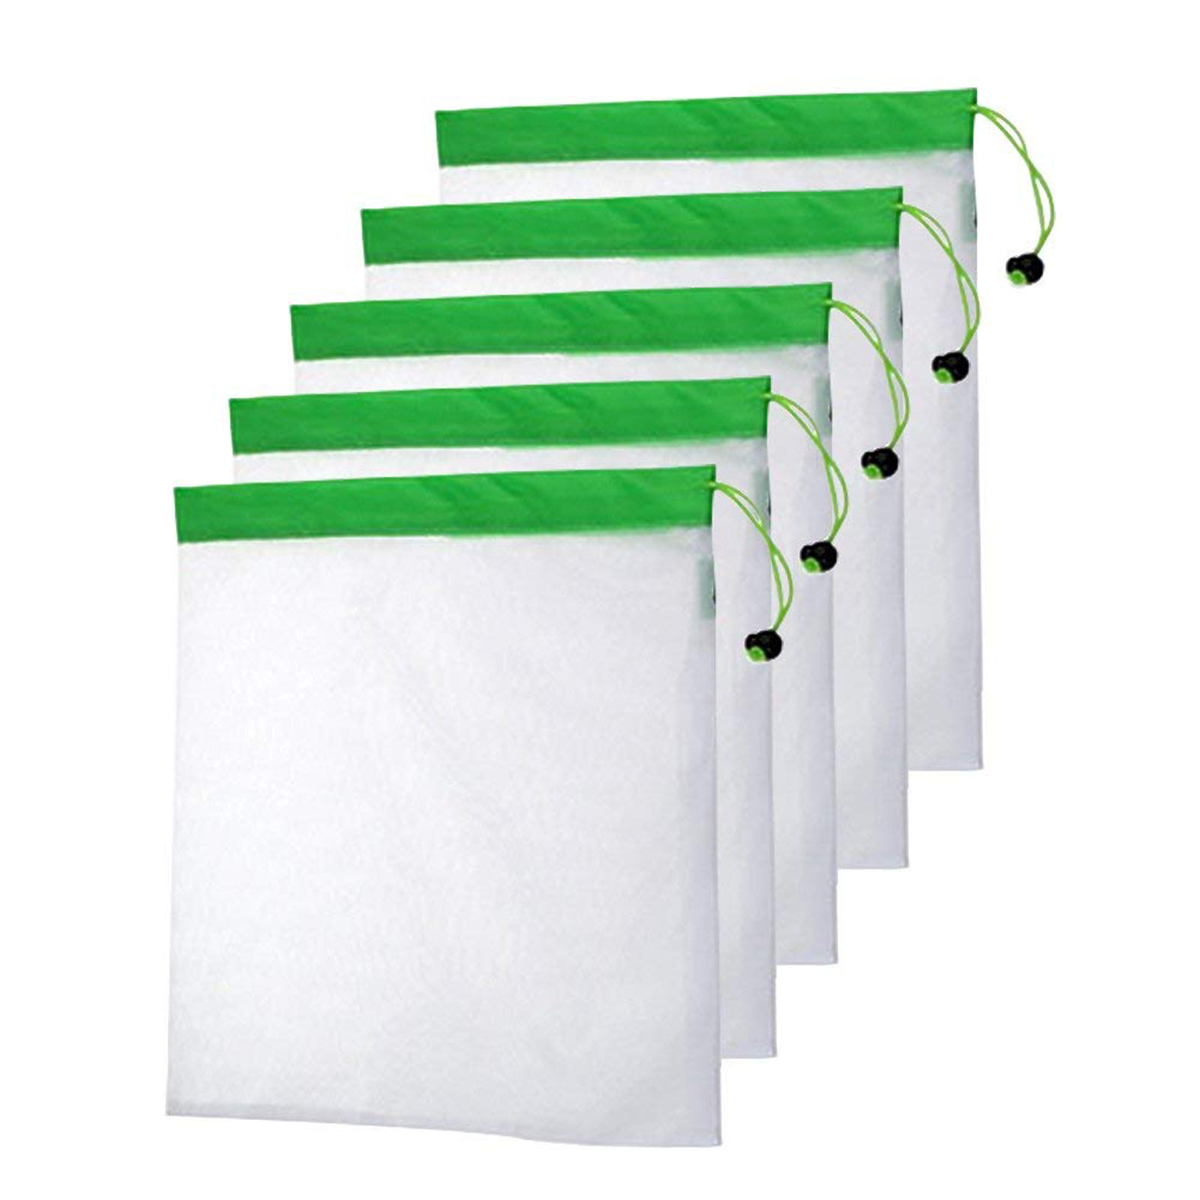 DCOS 5PCS/Set Polyester Washable Reusable Produce Bags, Eco-friendly Soft Premium Lightweight Vegetable Drawstring Storage Net